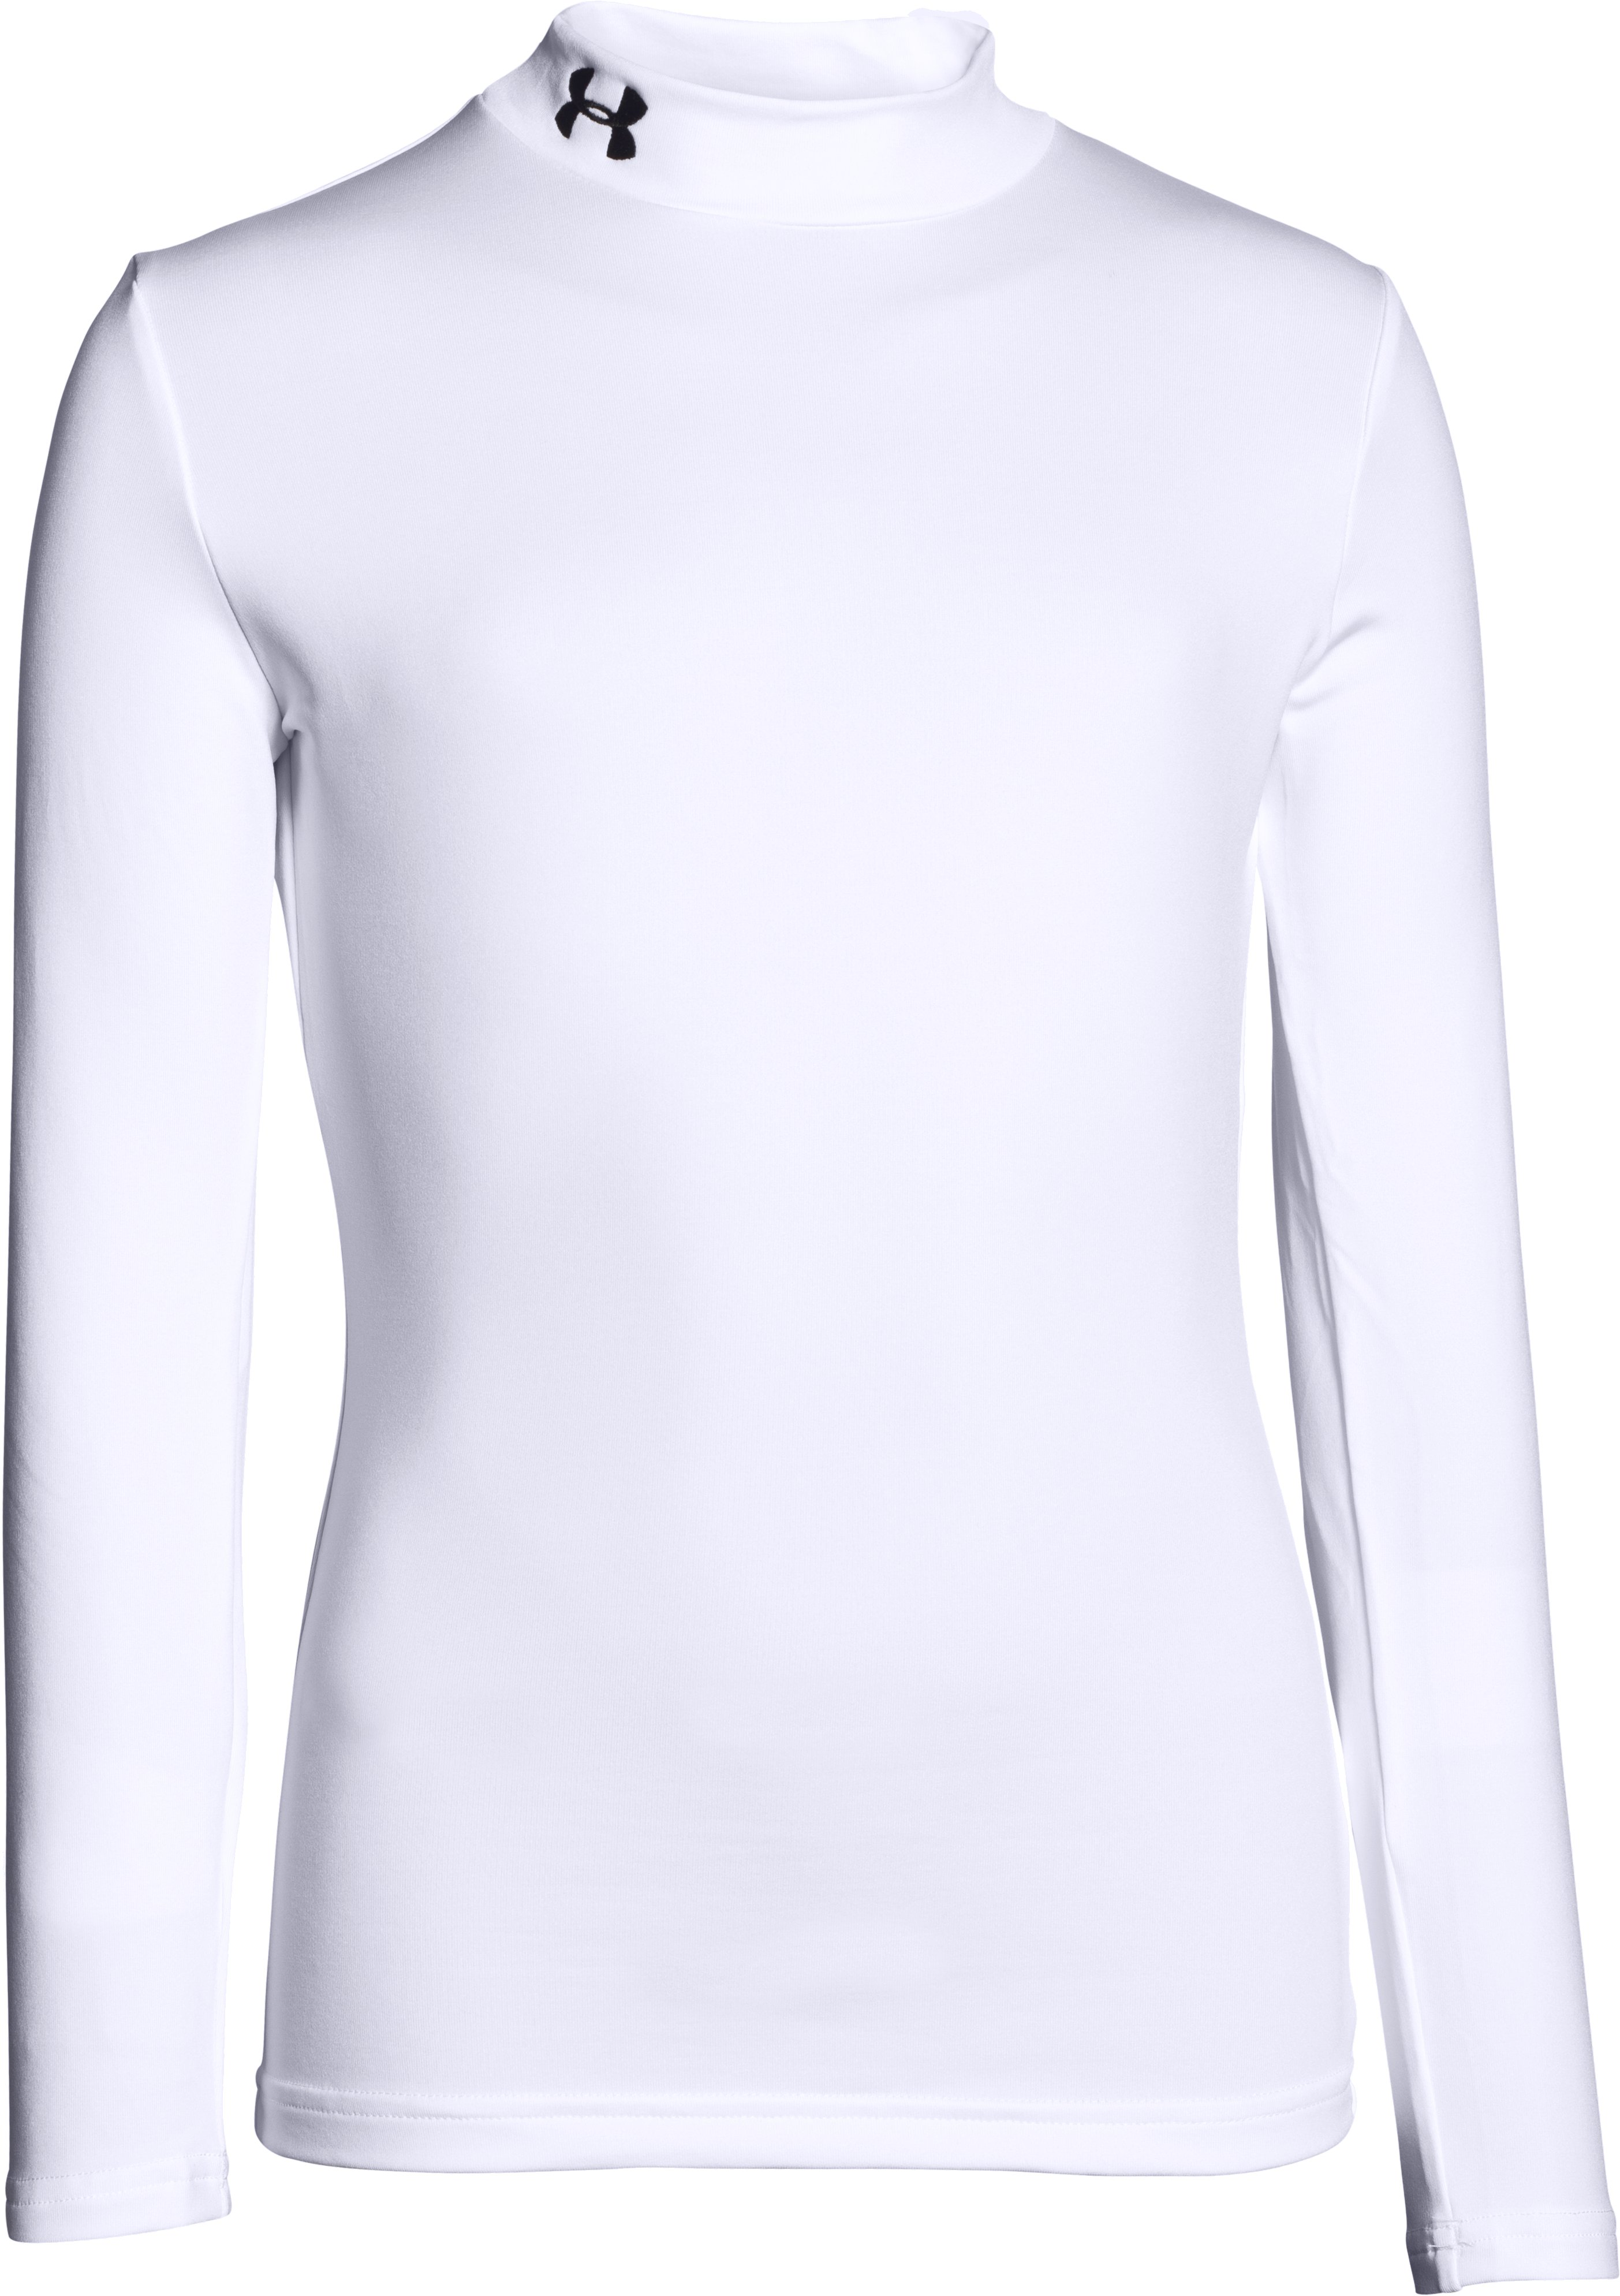 Boys' ColdGear® Evo Fitted Baselayer Mock, White, zoomed image